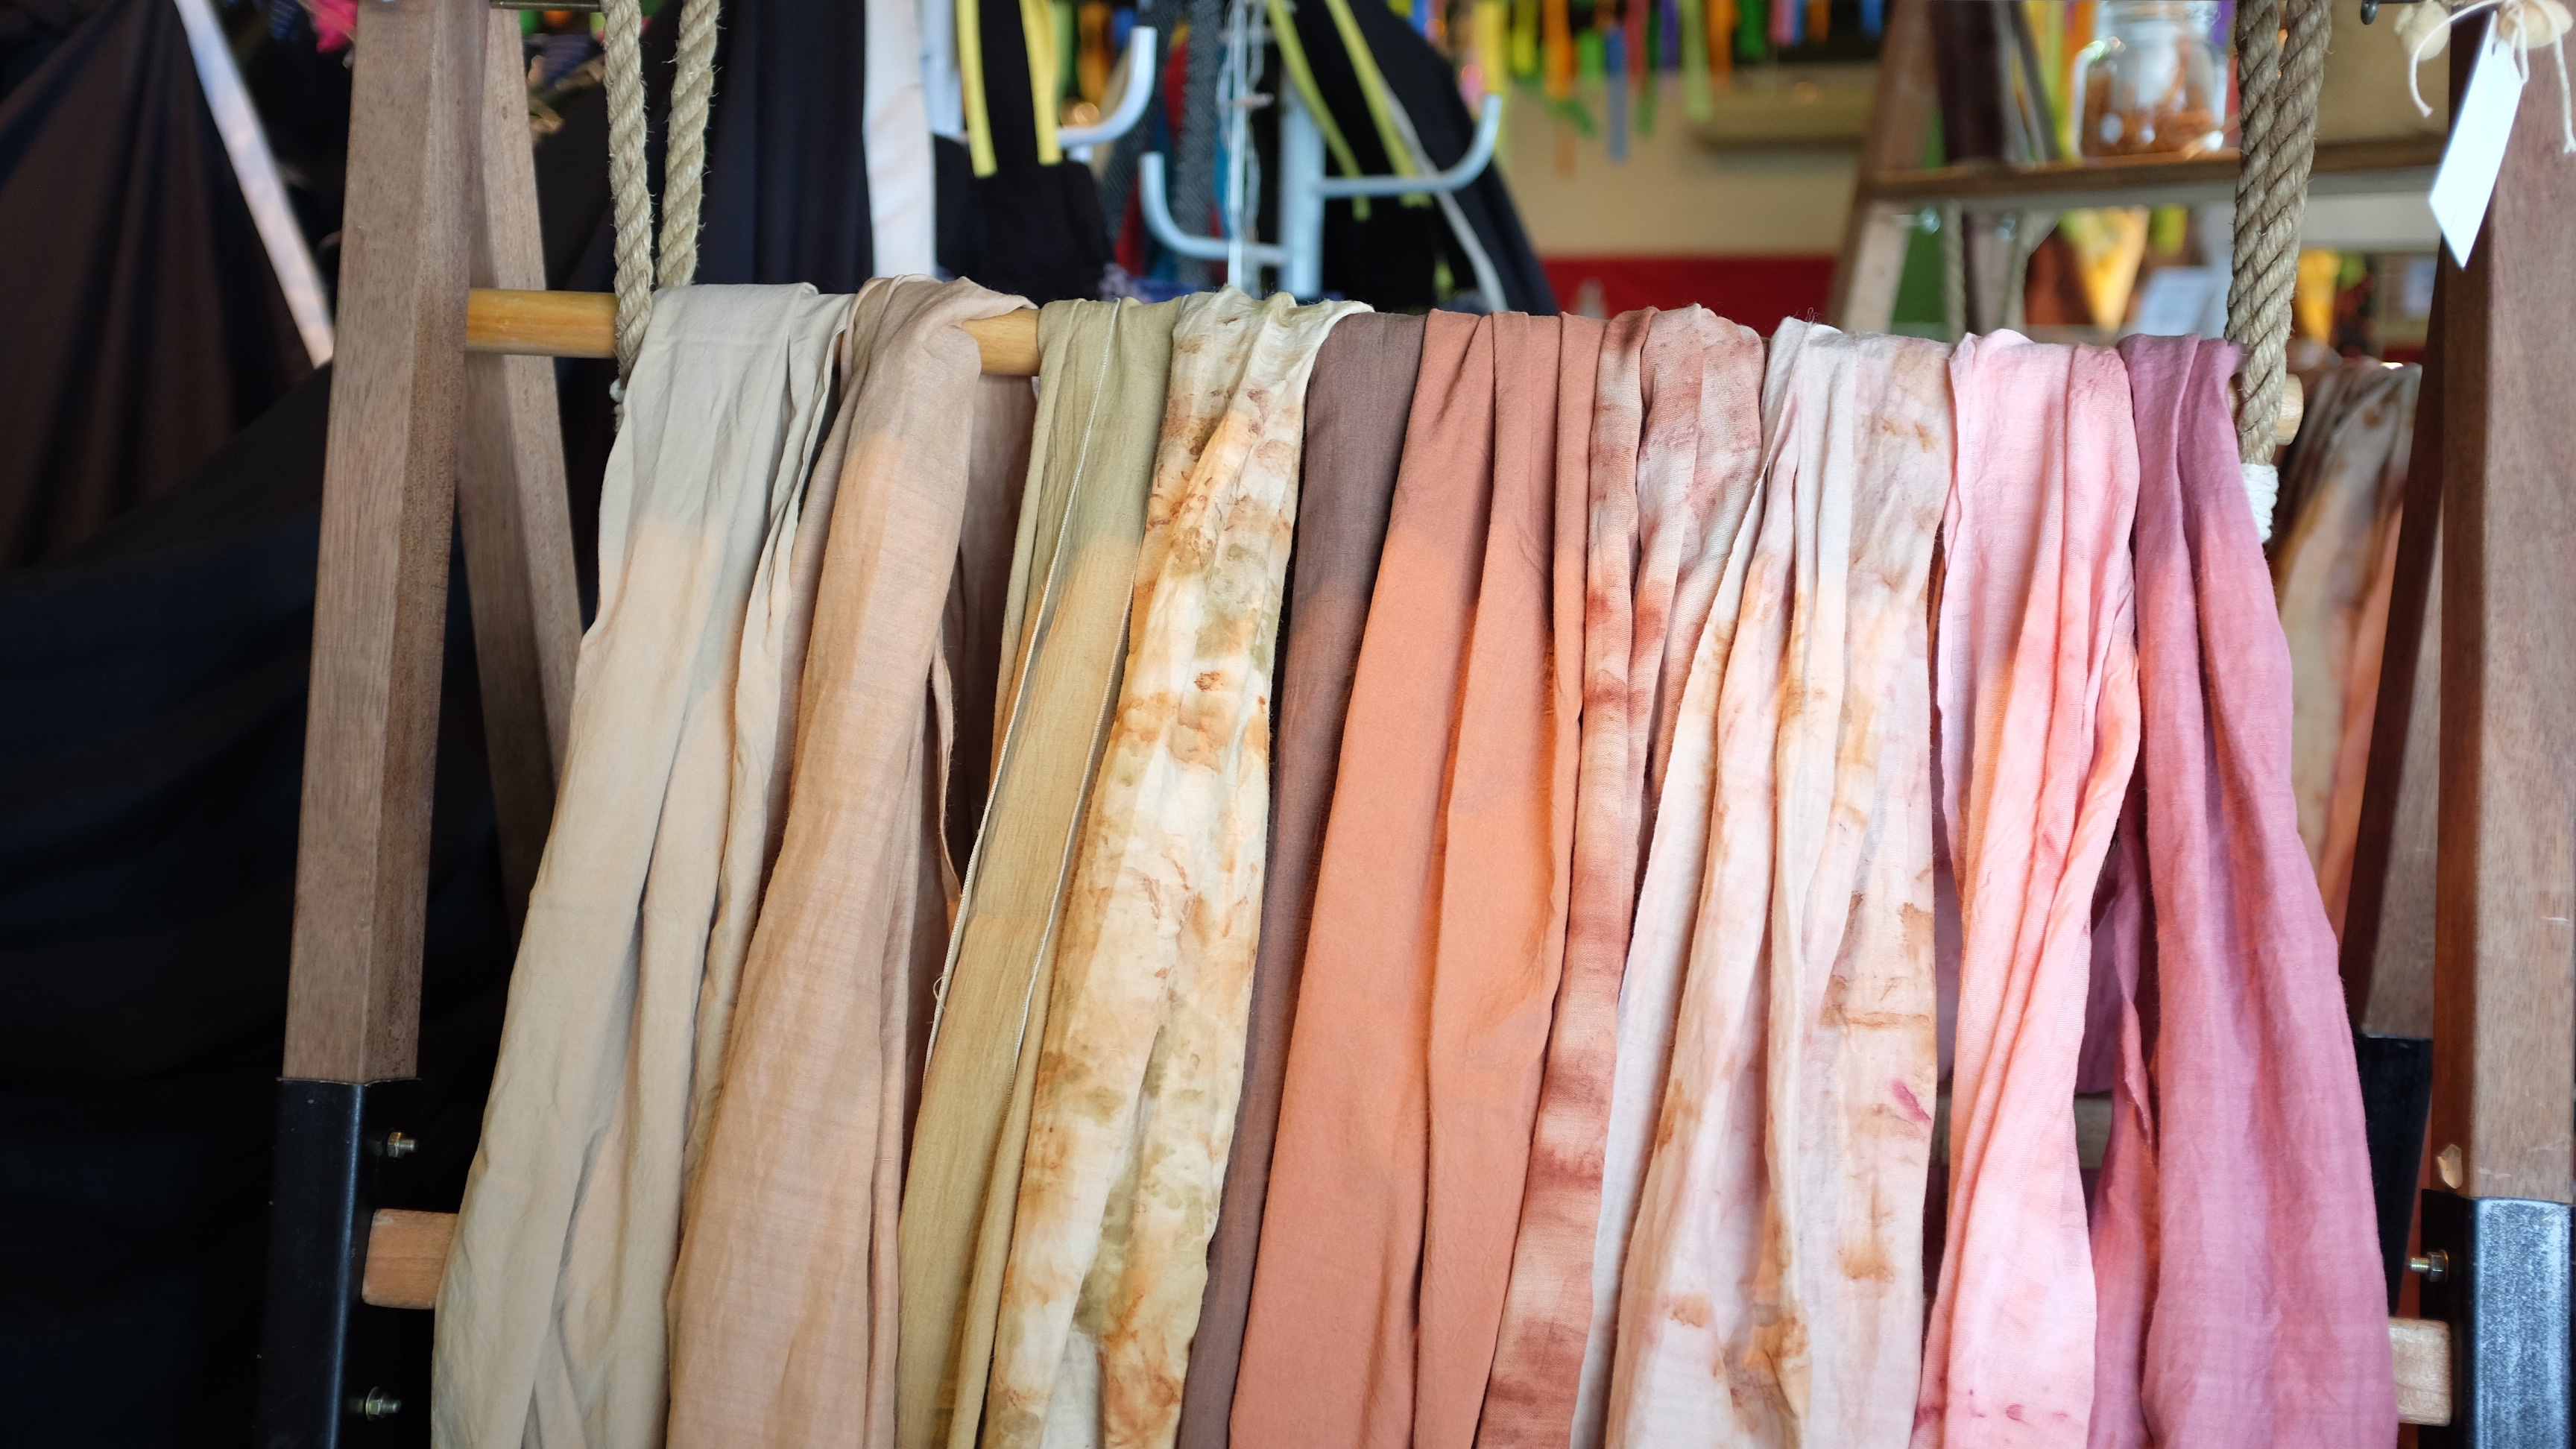 6 Ways to Reduce Your Fashion Footprint: Swaths of hand-dyed fabrics